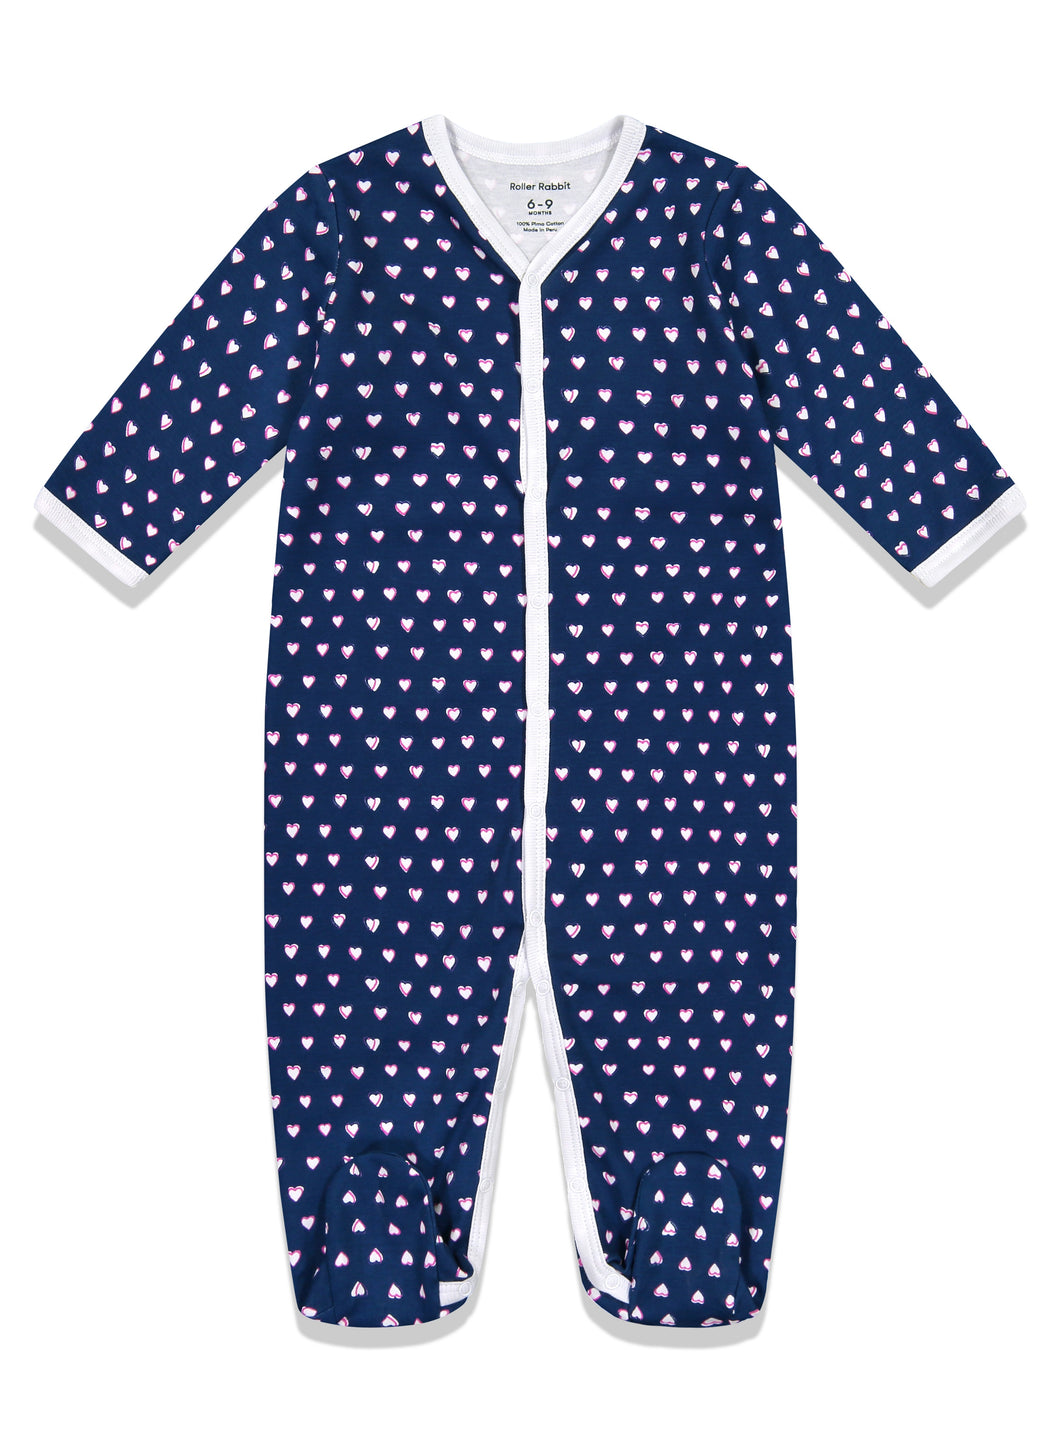 Roller Rabbit Infant Footie Pajamas Navy Hearts